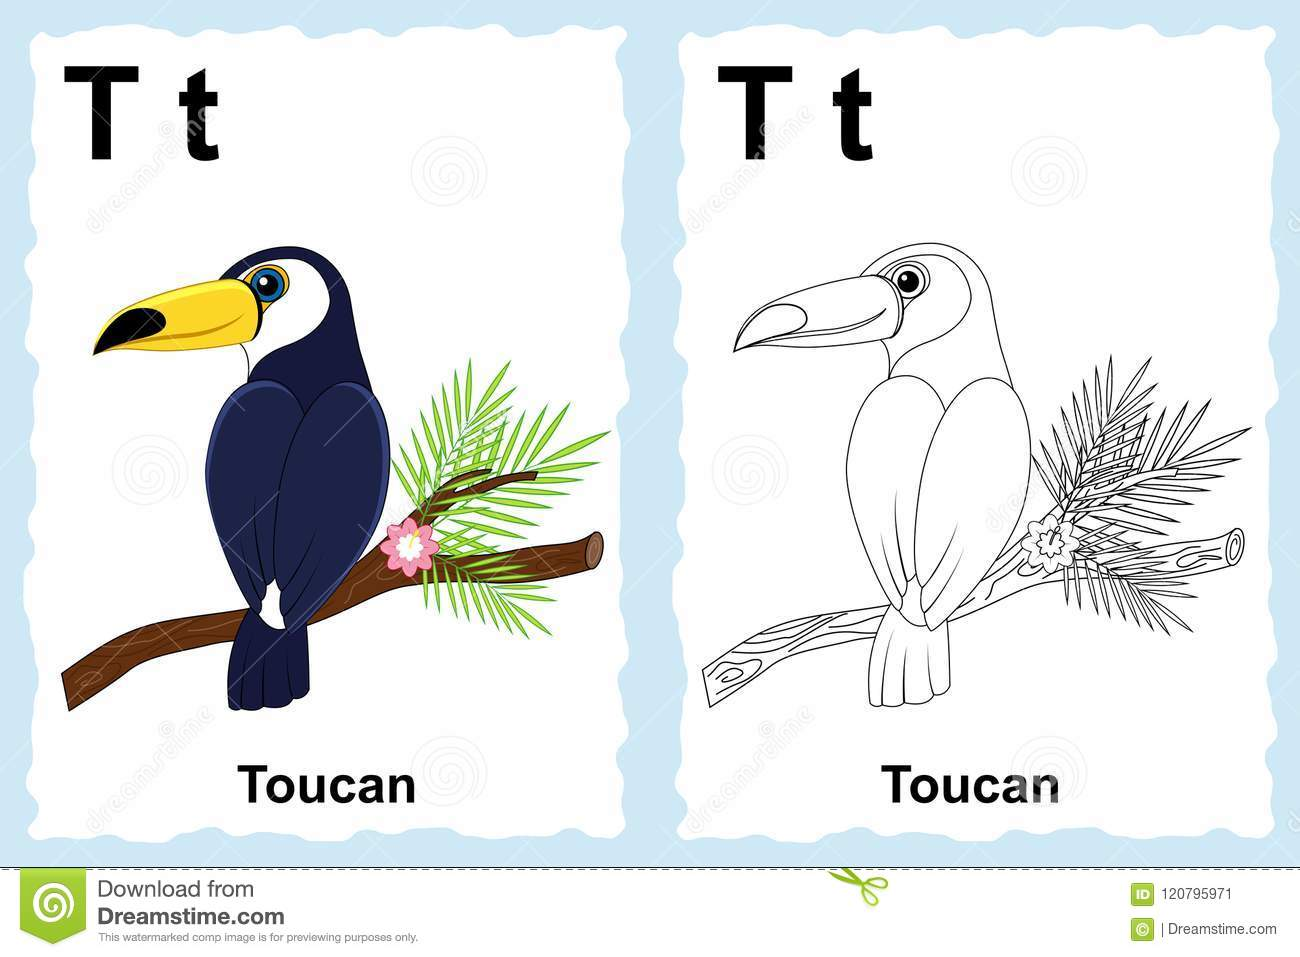 Alphabet coloring book page with outline clip art to color. Letter T. Toucan. Vector animals.